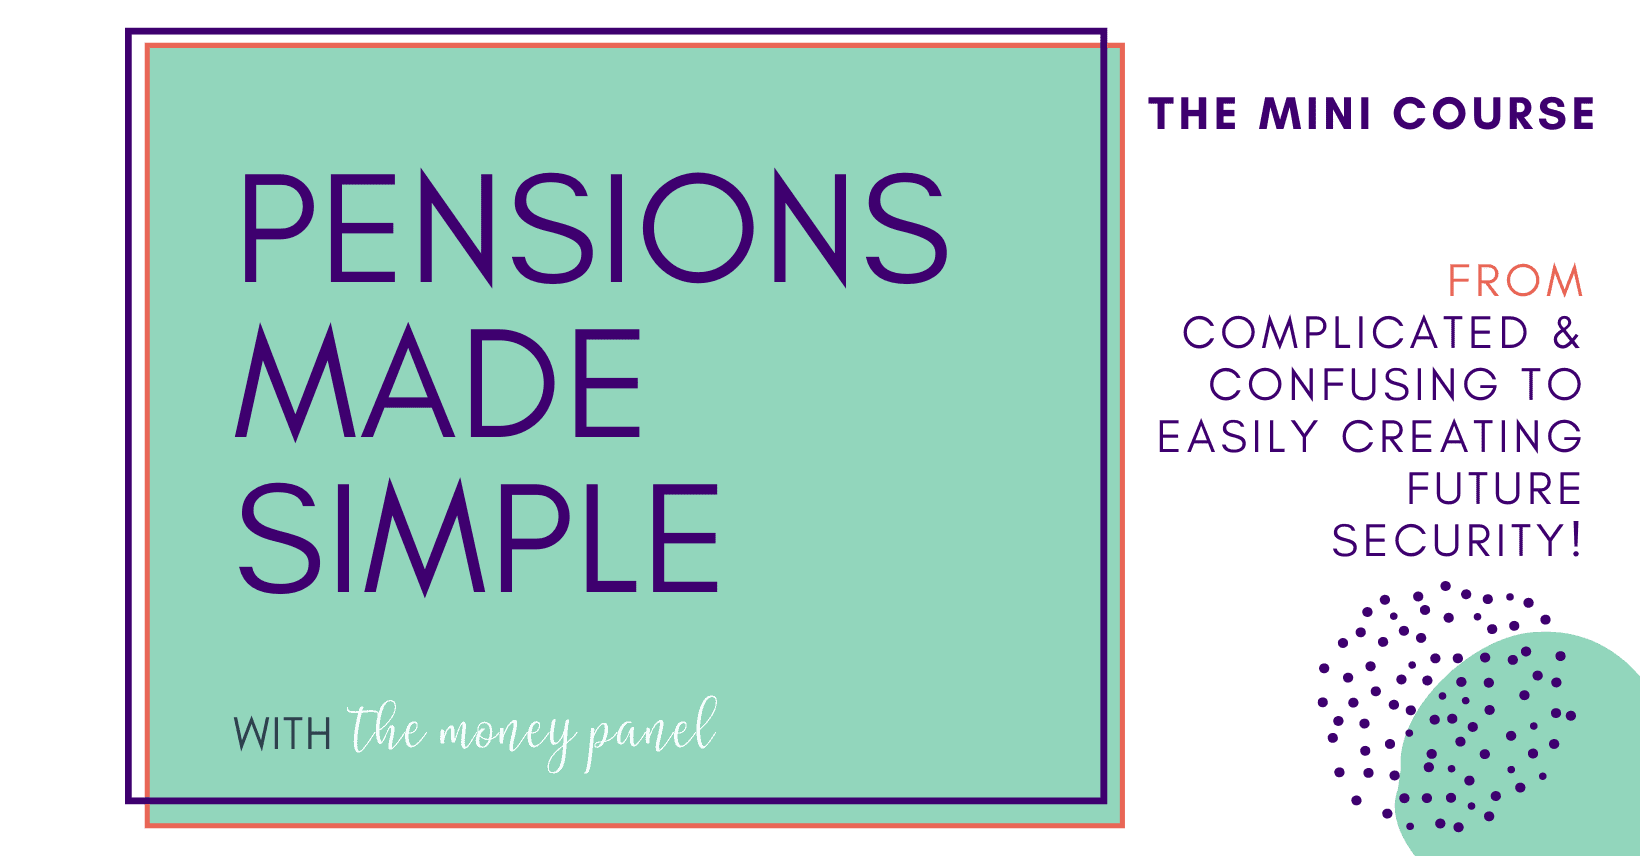 Pensions Made Simple v2